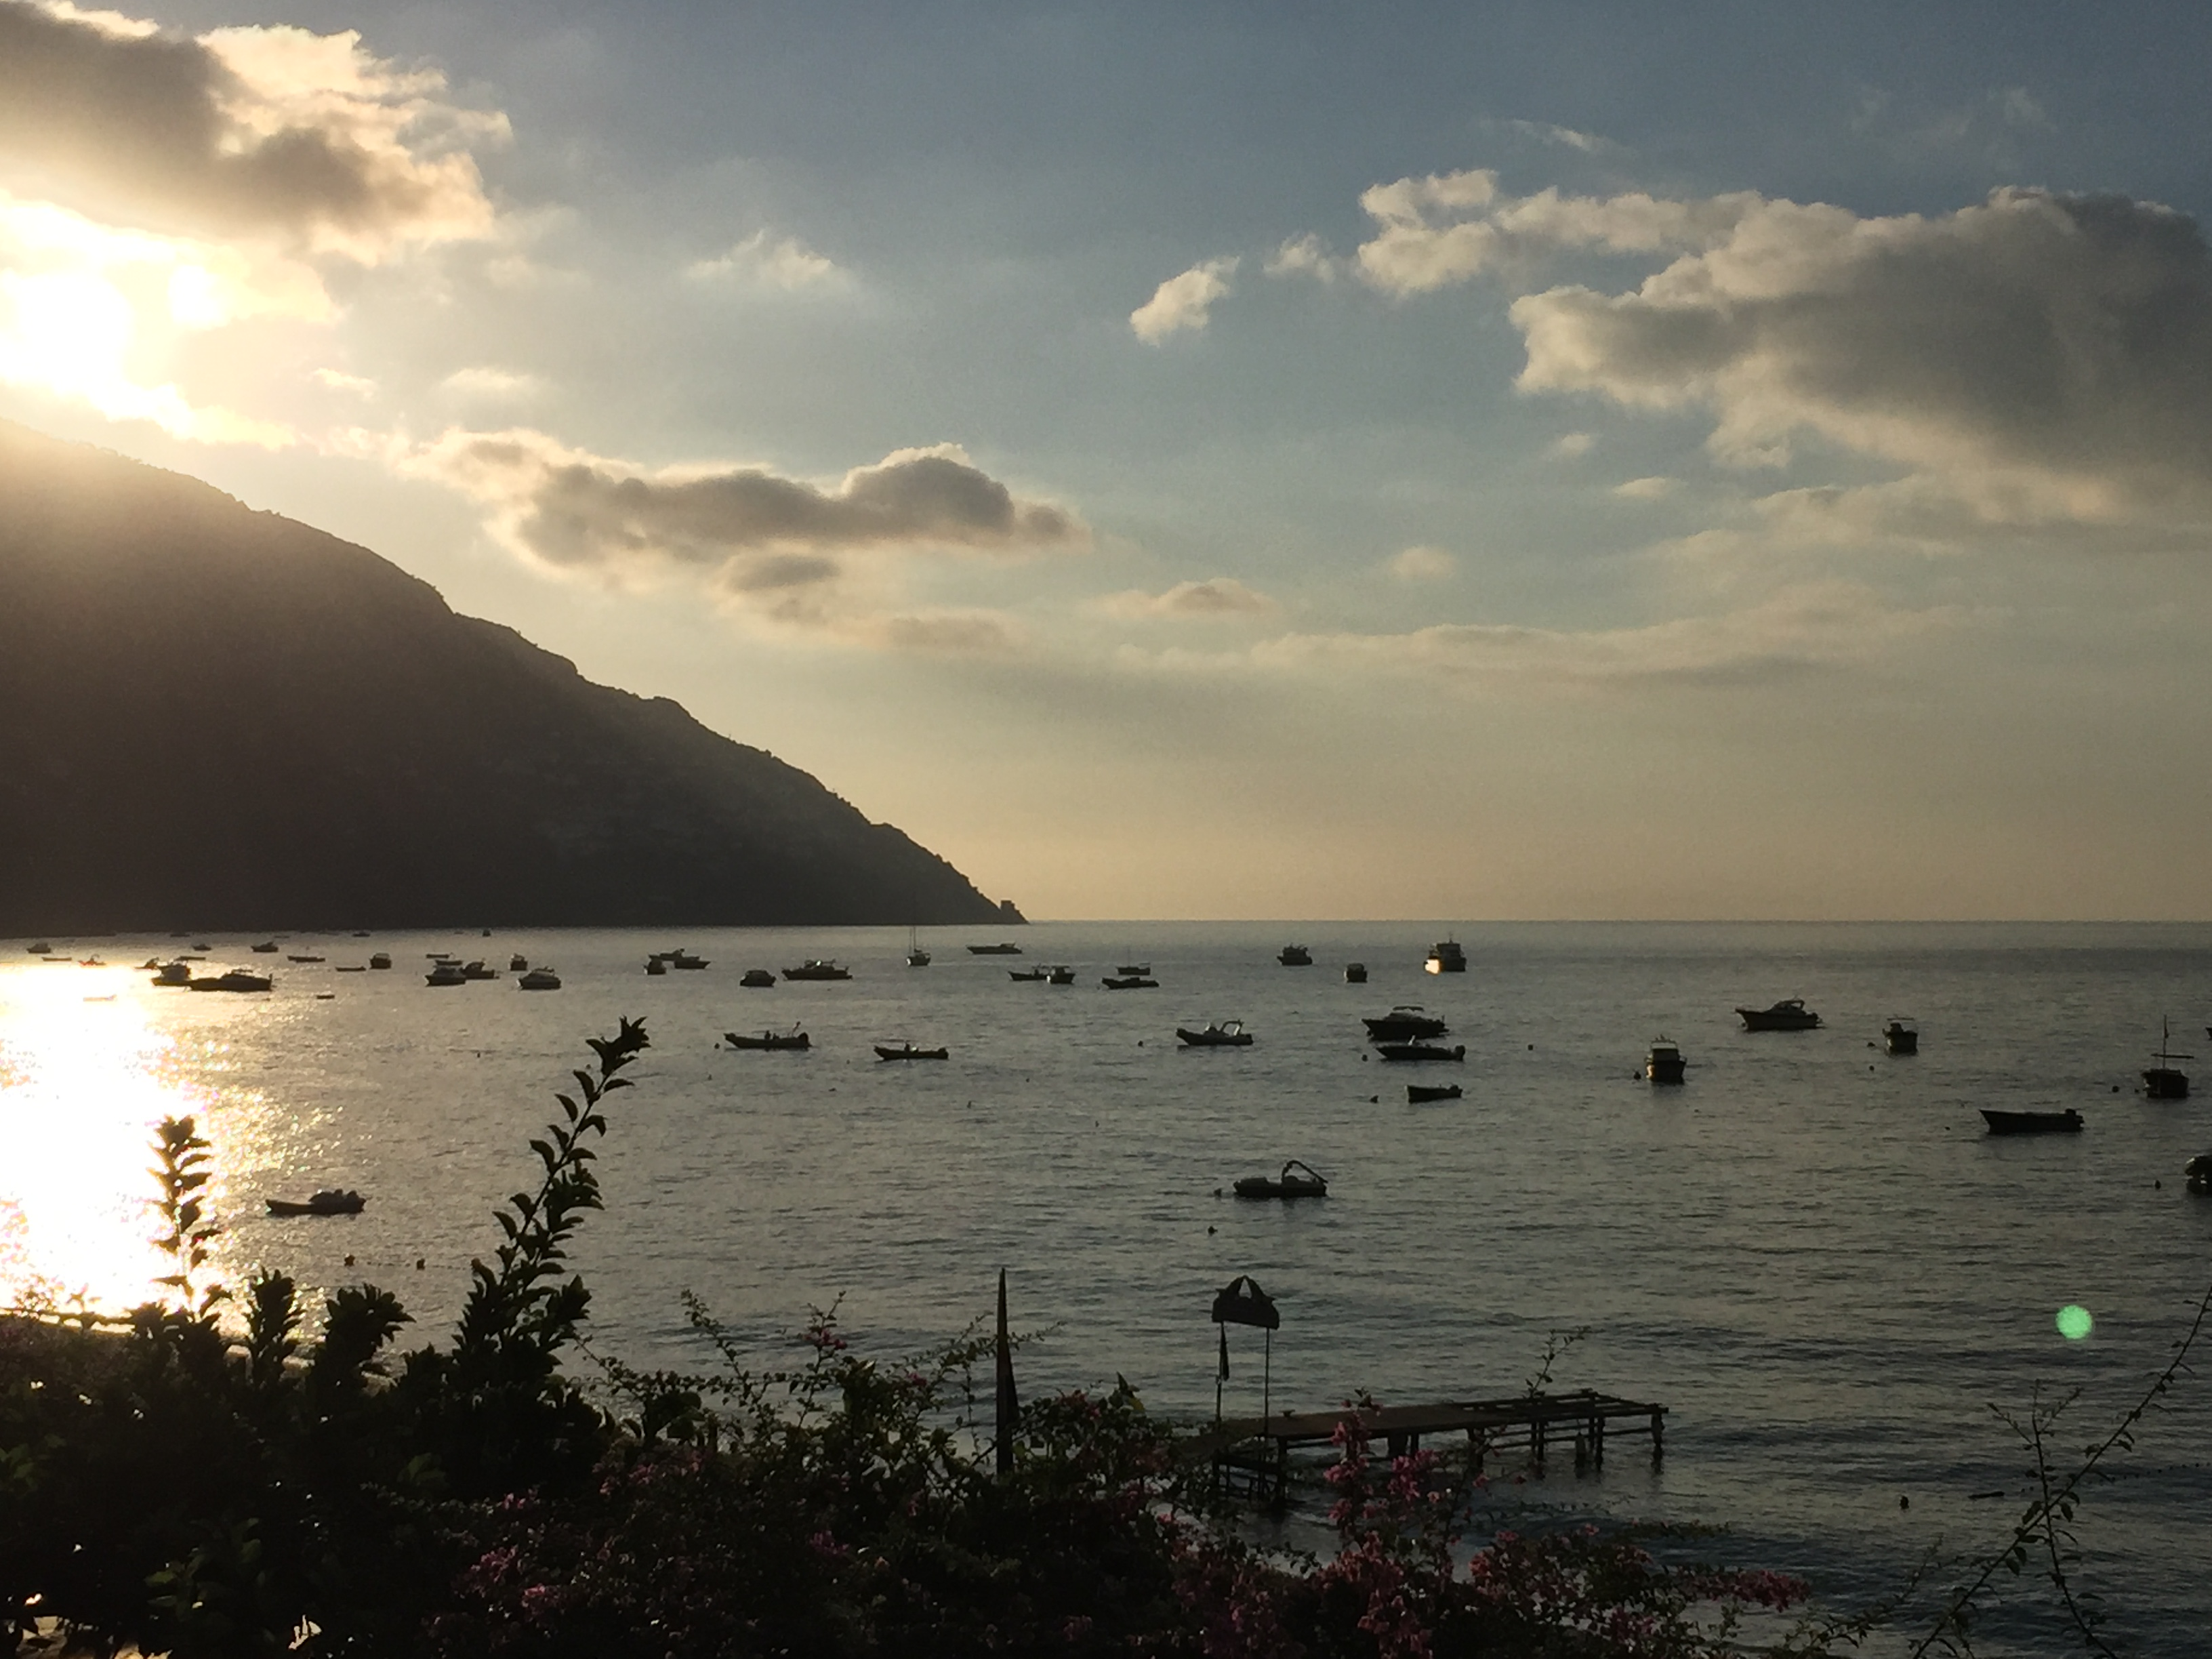 Travel in Italy – Photos from Positano